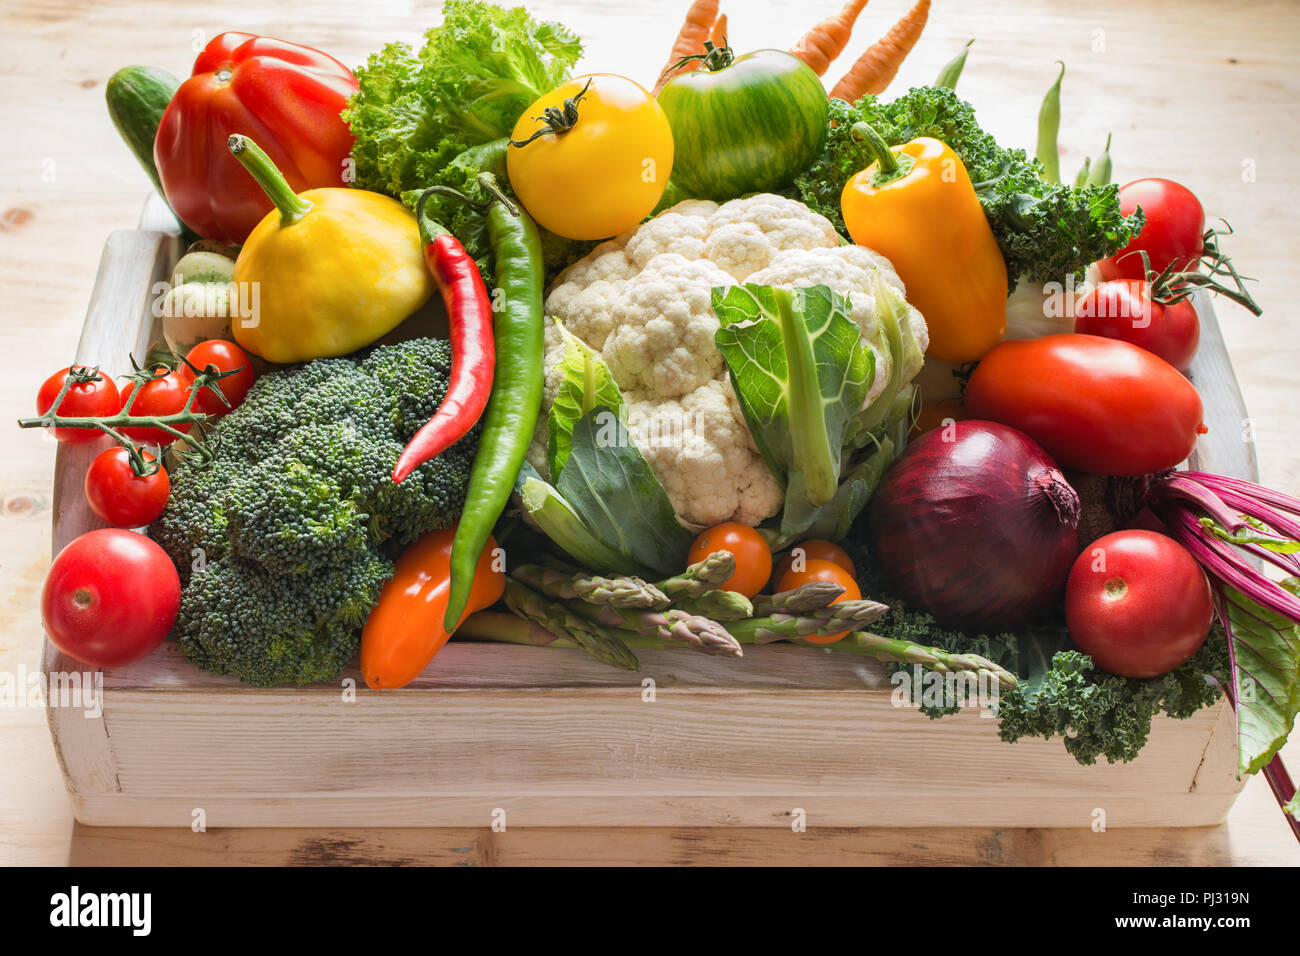 Fresh organic colorful vegetables in a white tray on wooden pine table, close up, selective focus - Stock Image